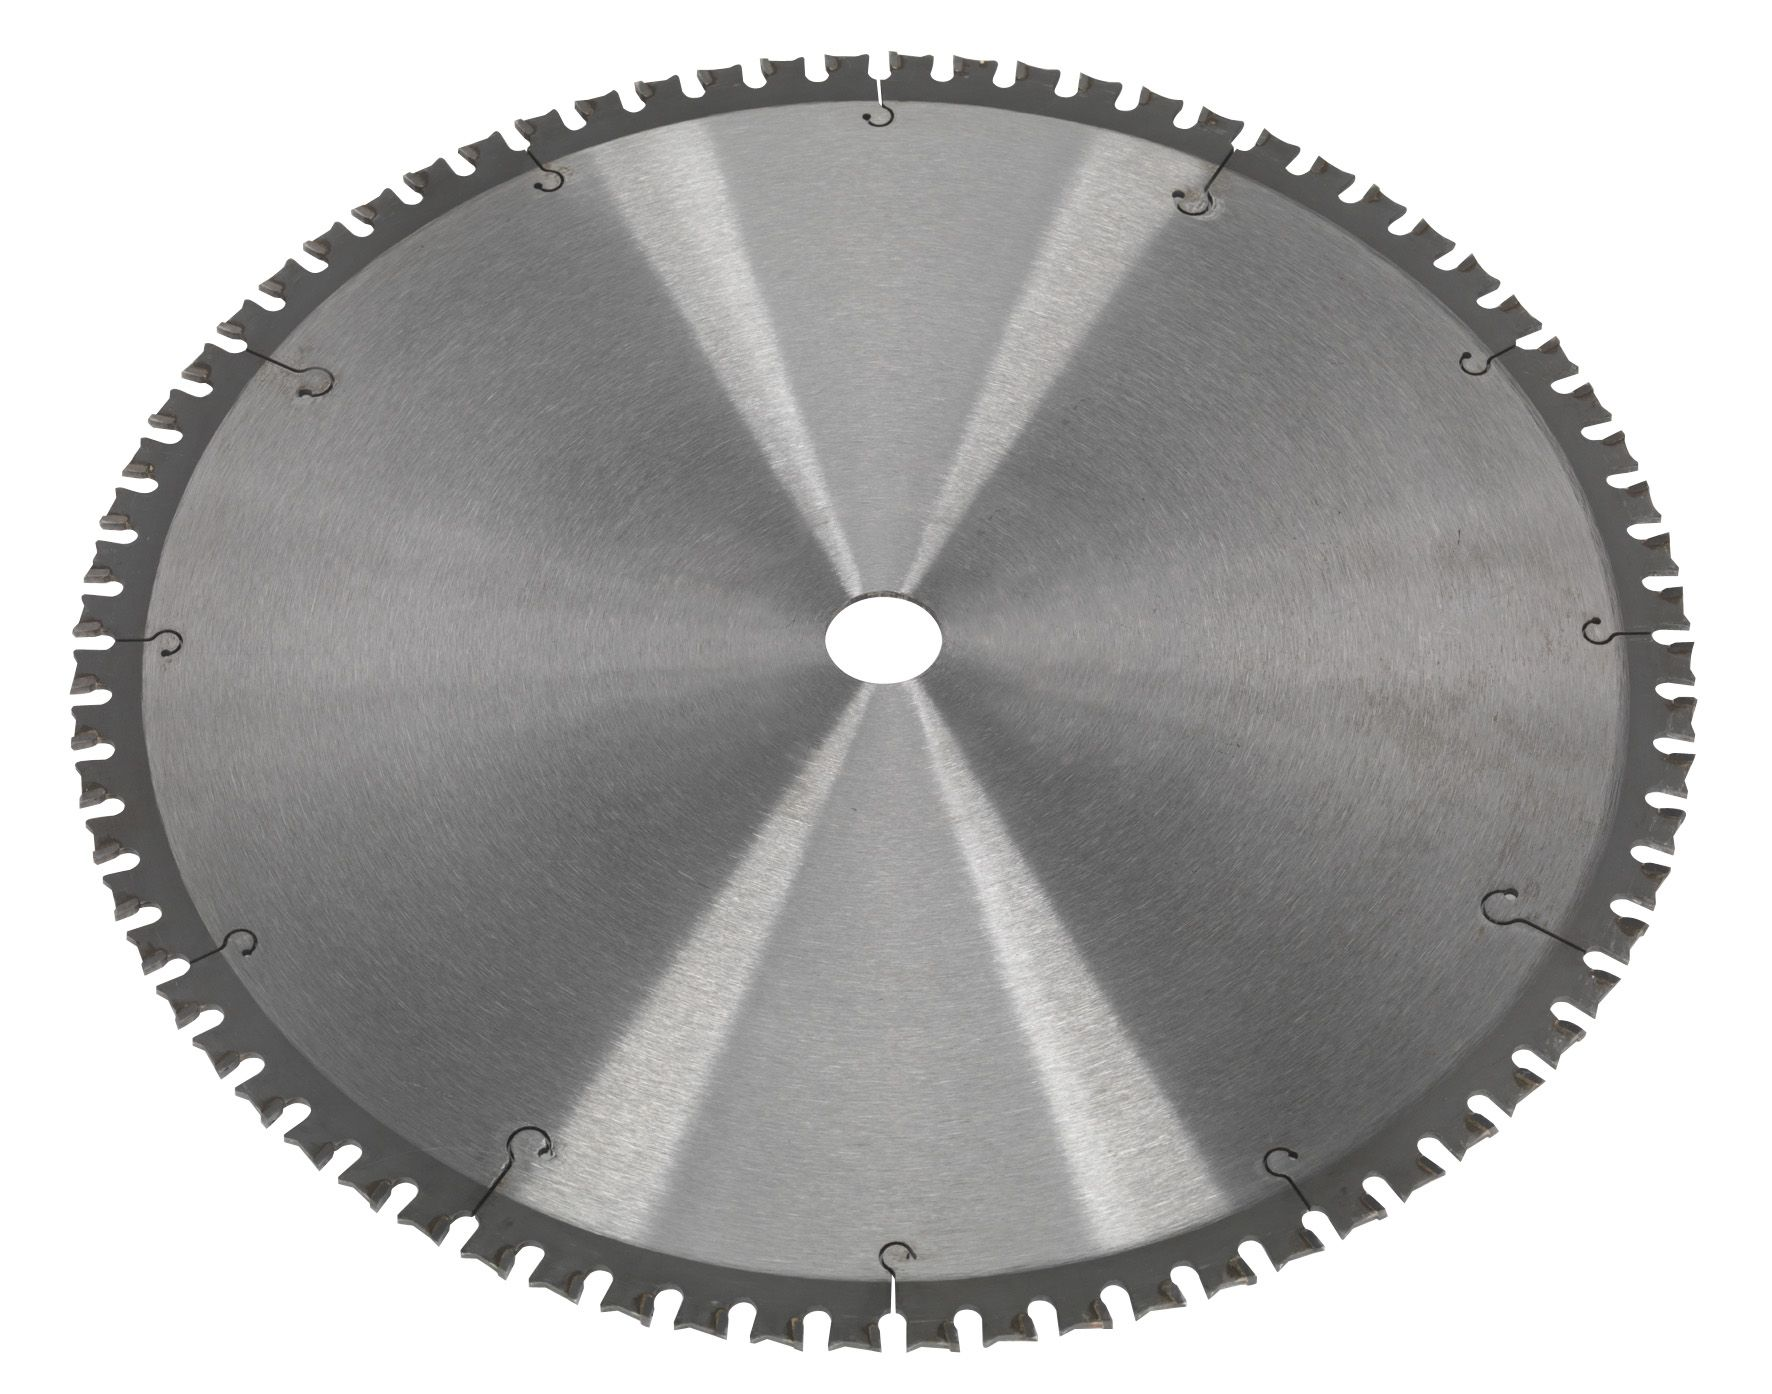 355mm 14 Inch Cutting Saw Blade Abtec4abrasives